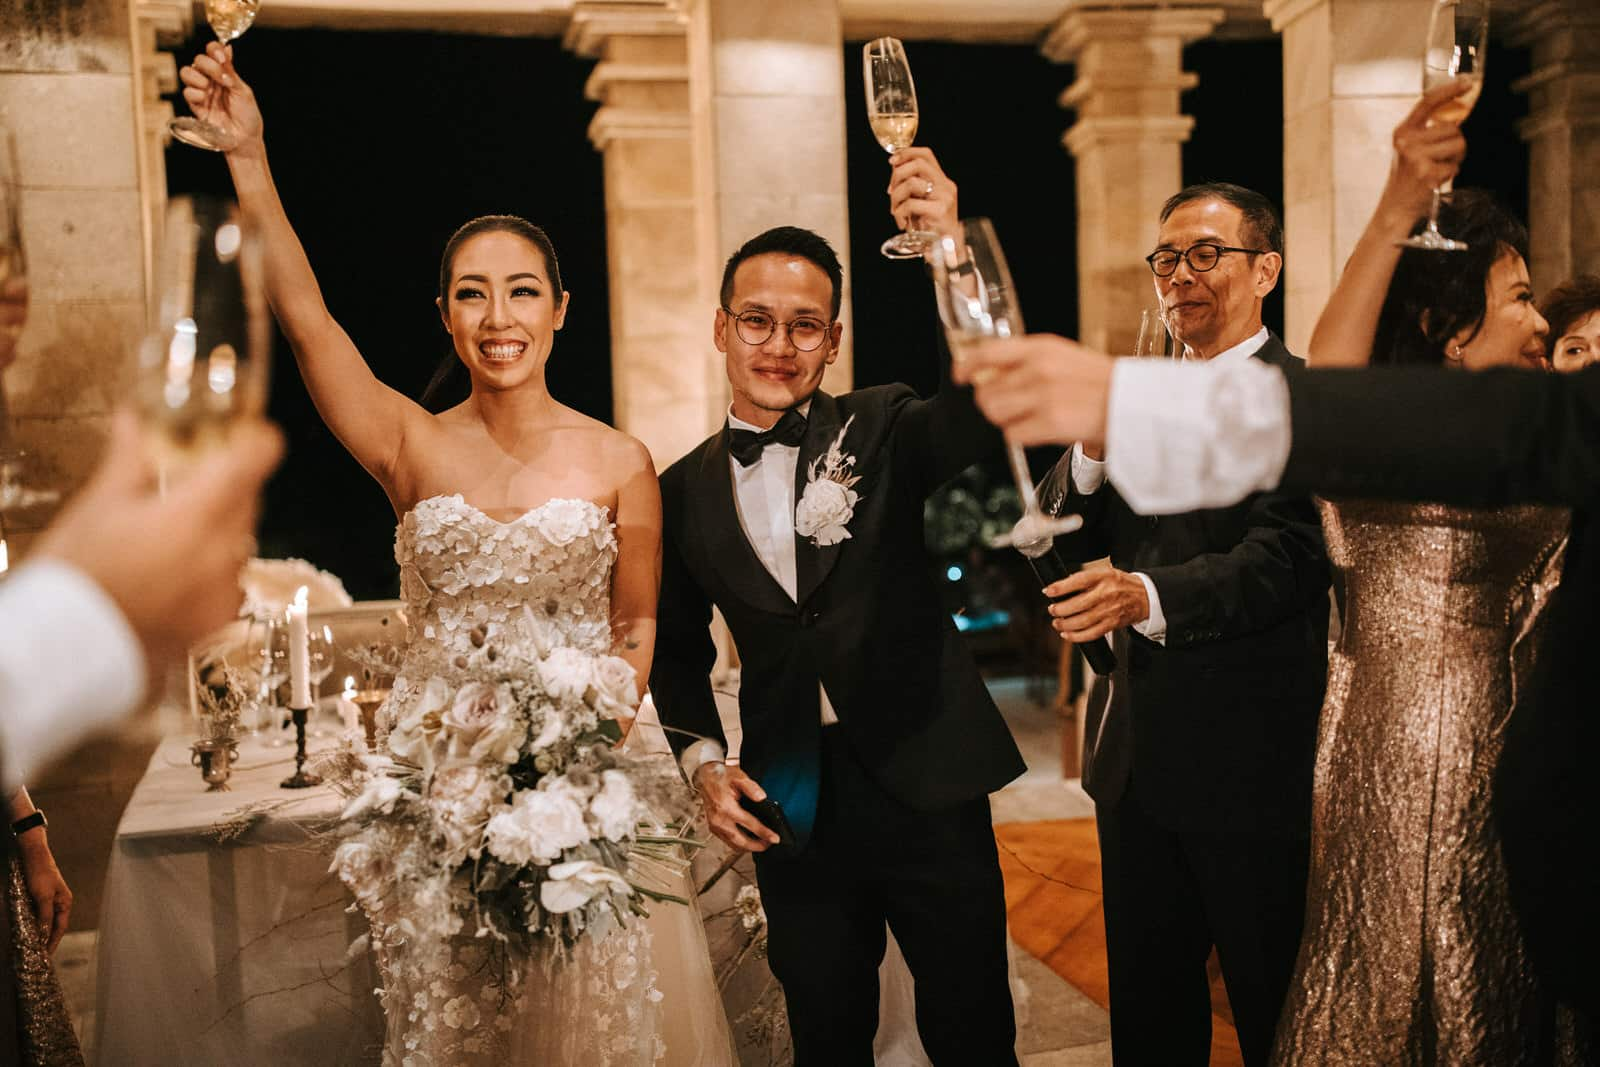 The wedding couple is holding up glasses of champagne.